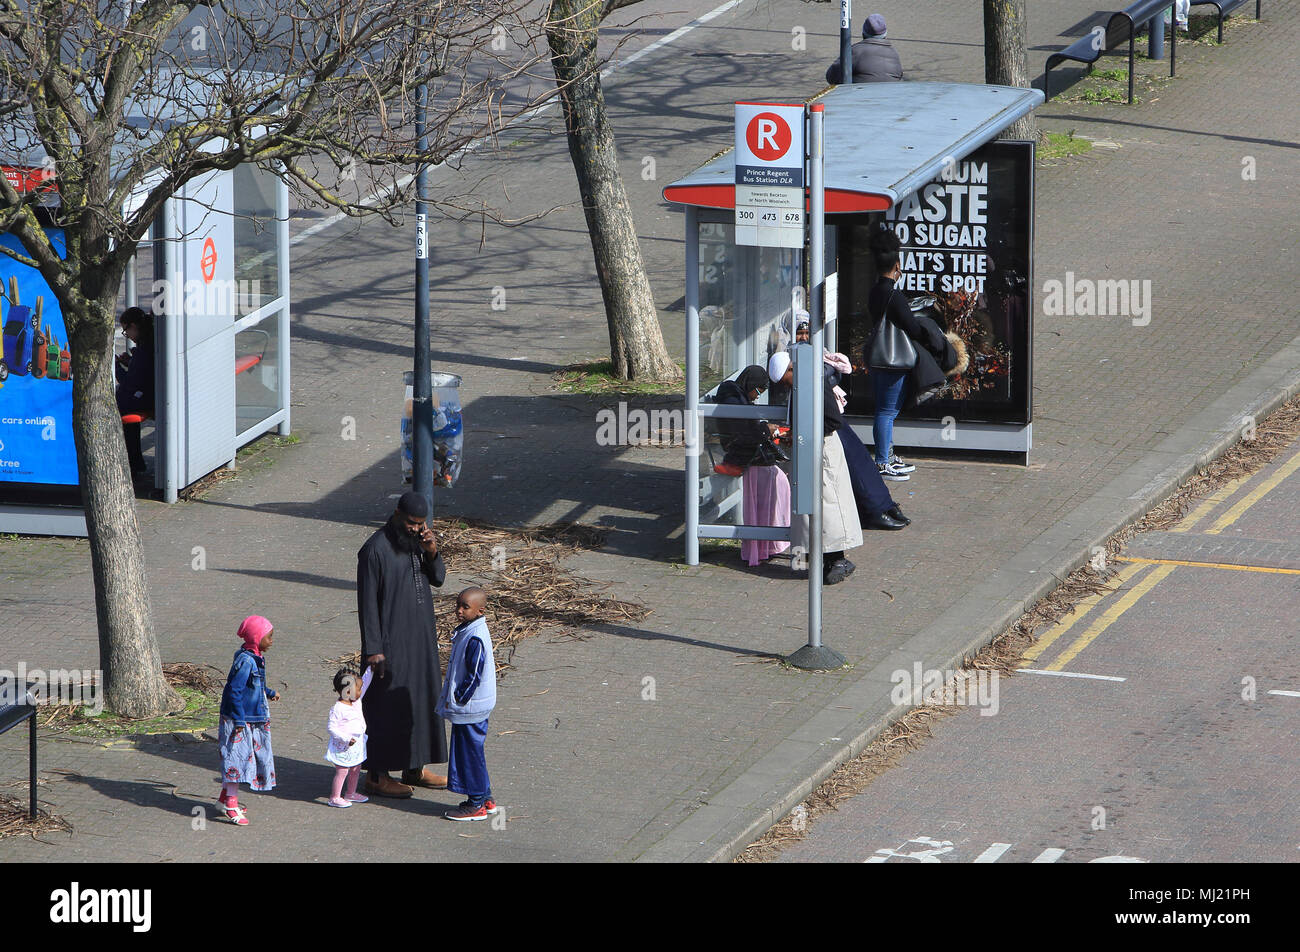 People waiting at the bus stop in diverse and multicultural Canning Town, in east London, England, UK - Stock Image